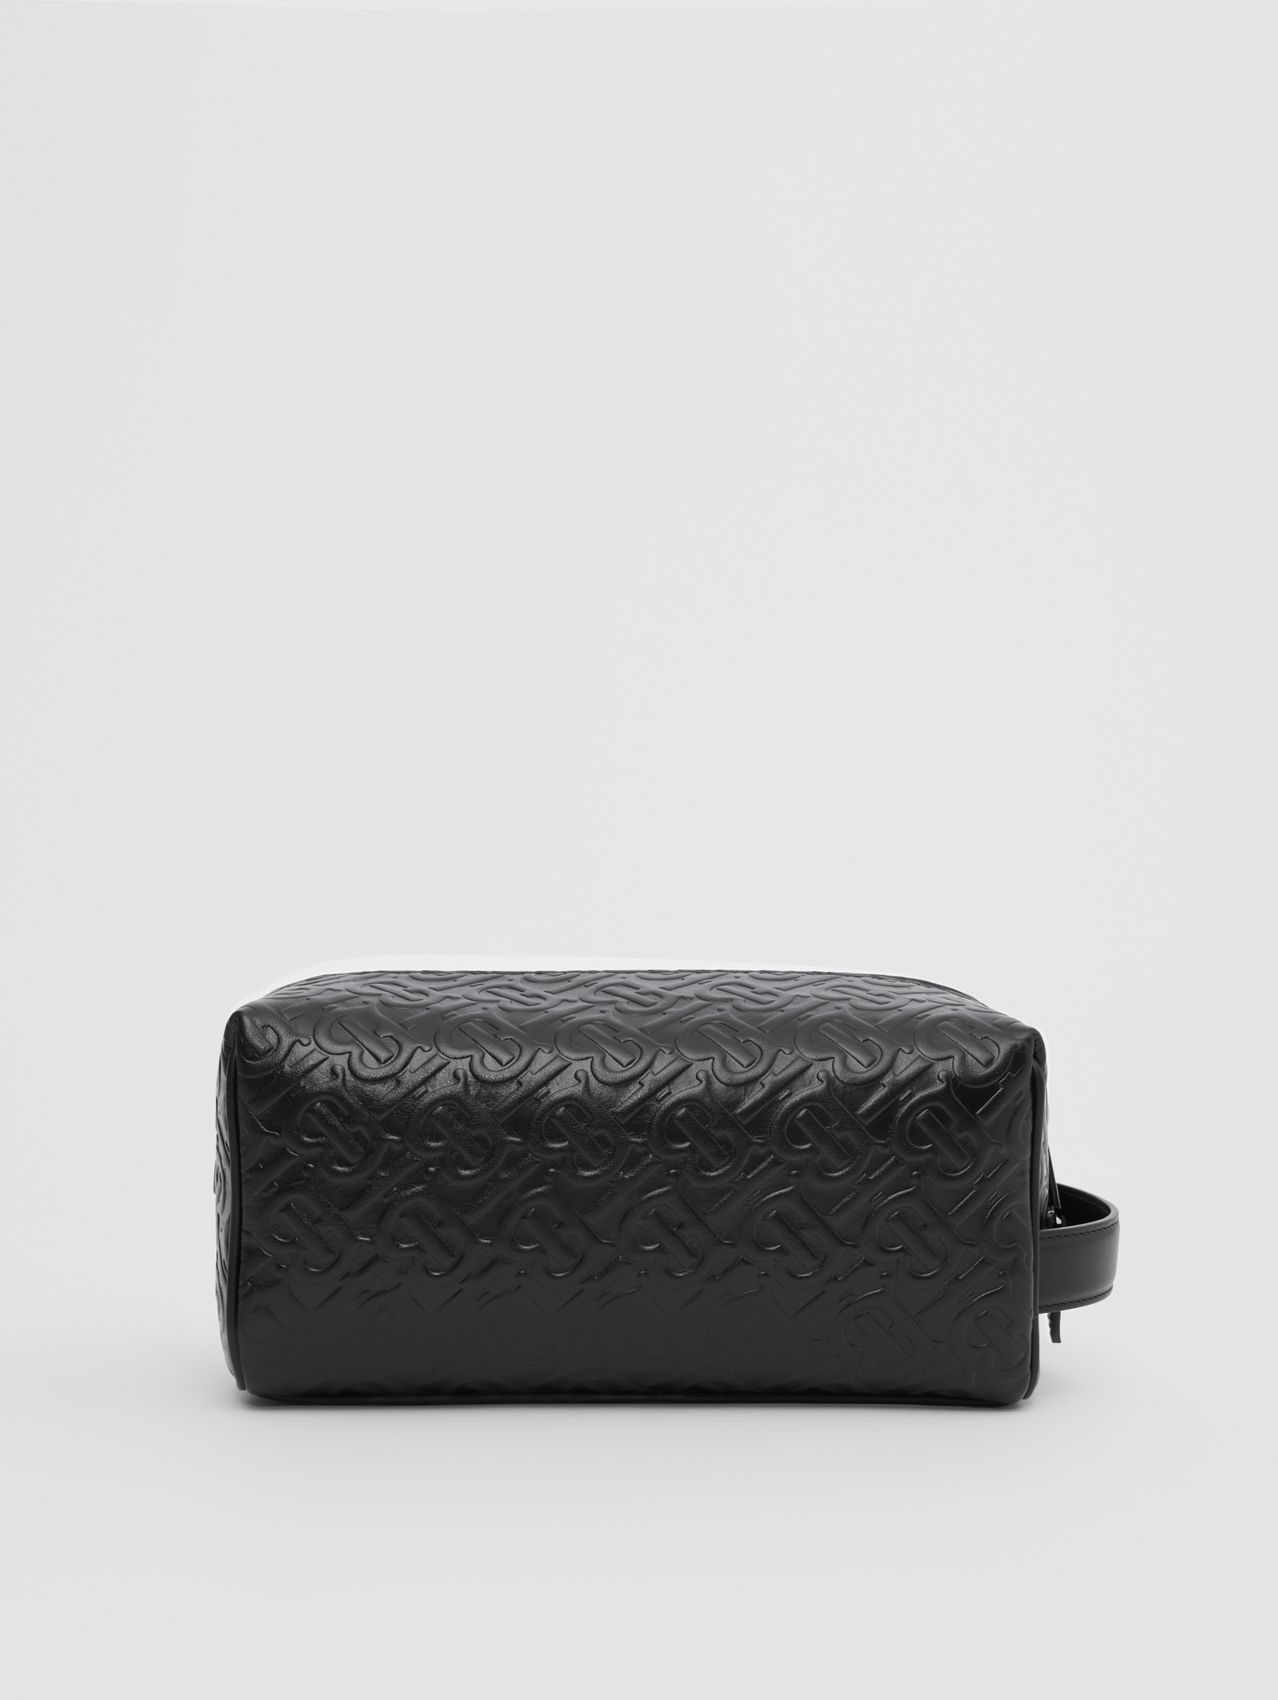 Monogram Leather Travel Pouch in Black